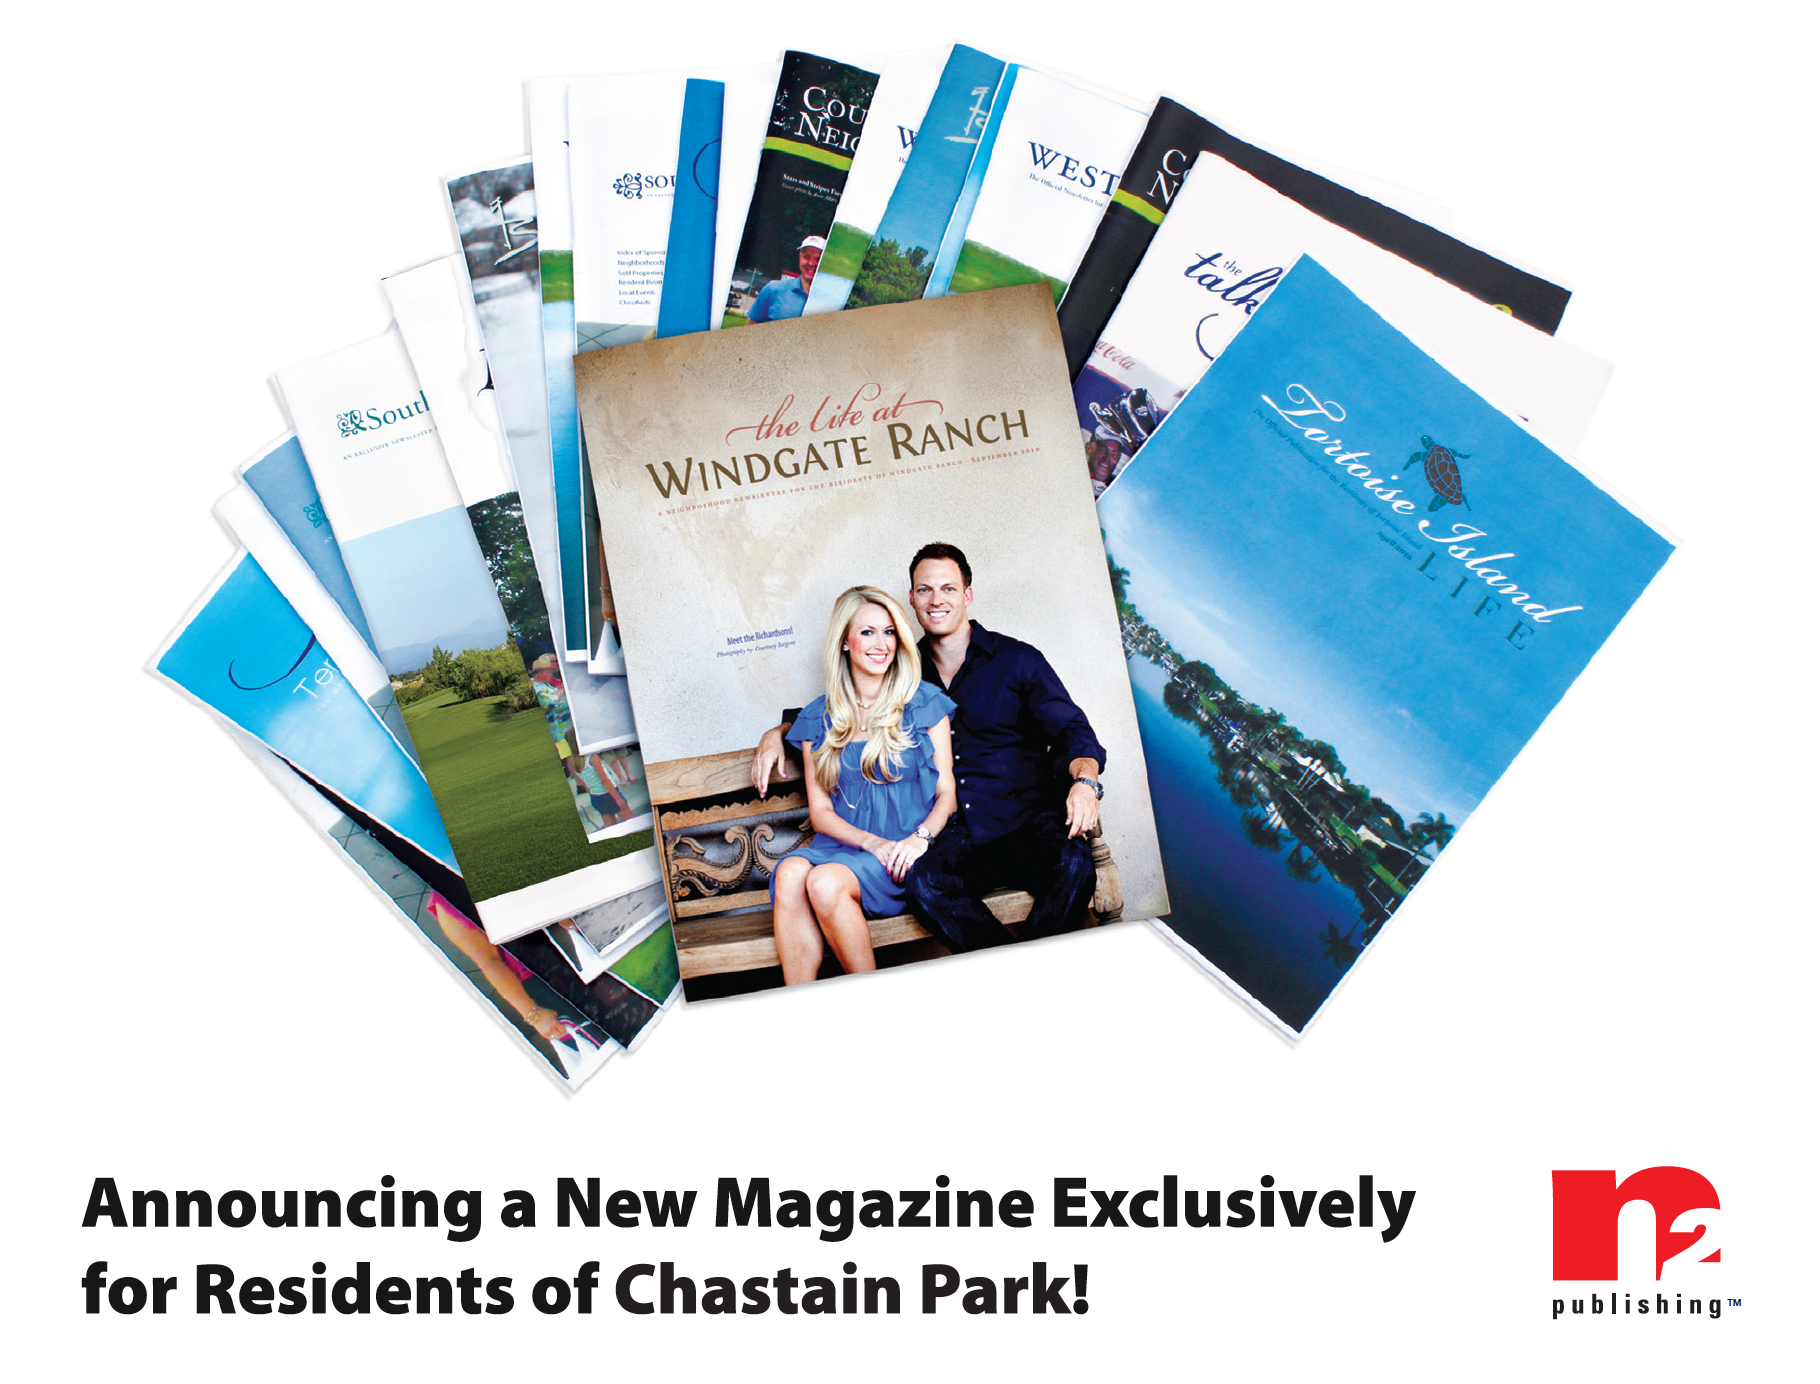 New Magazine all About Chastain Park | The Chastain Park Blog - Keep ...